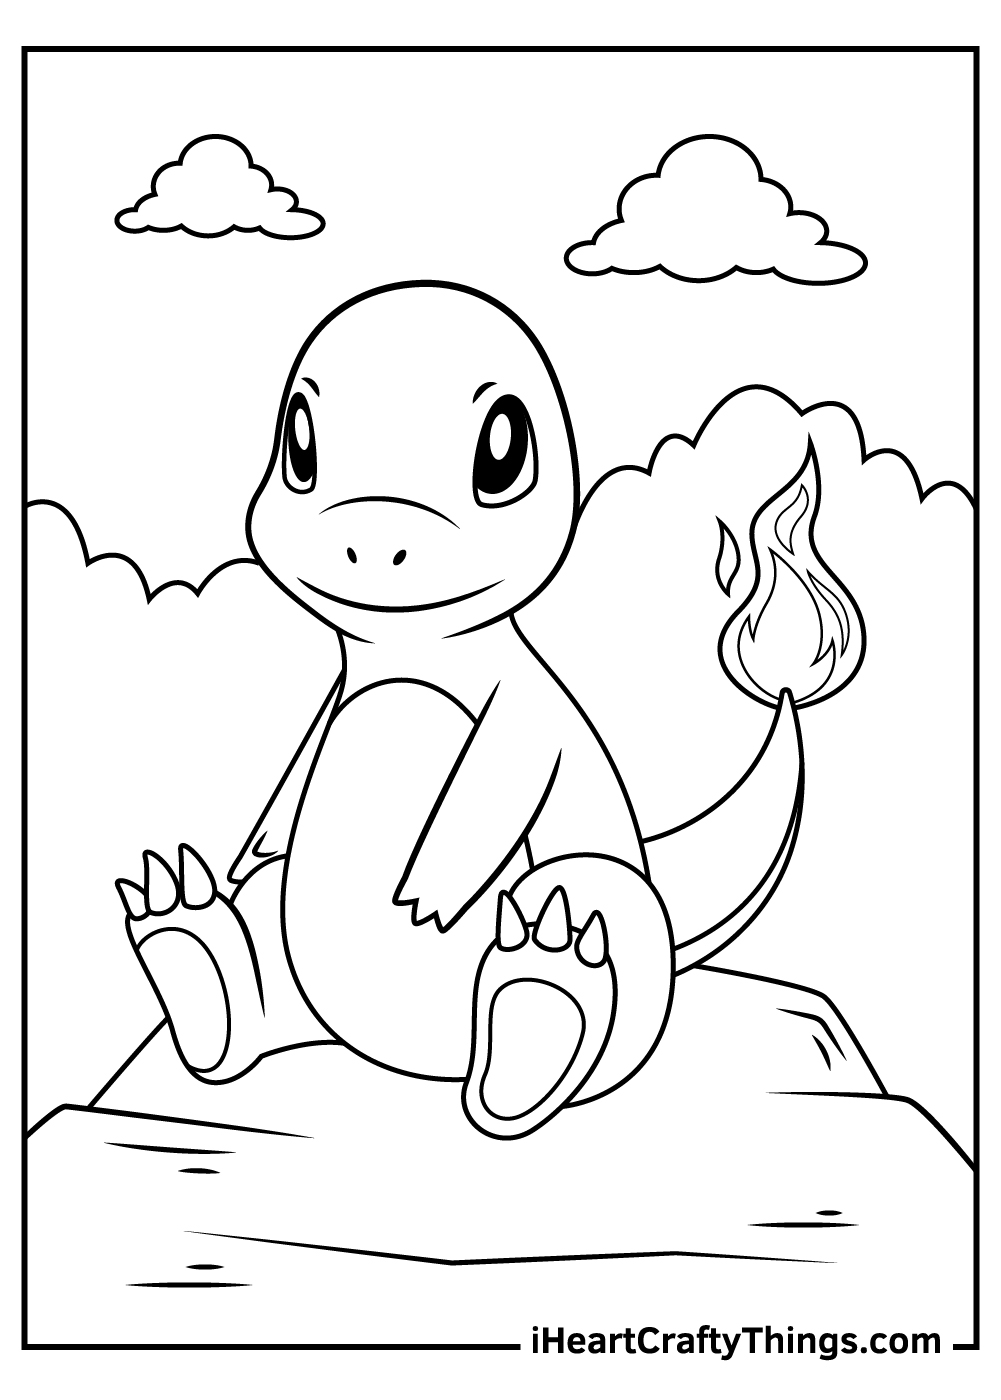 pikachu and charmander coloring pages